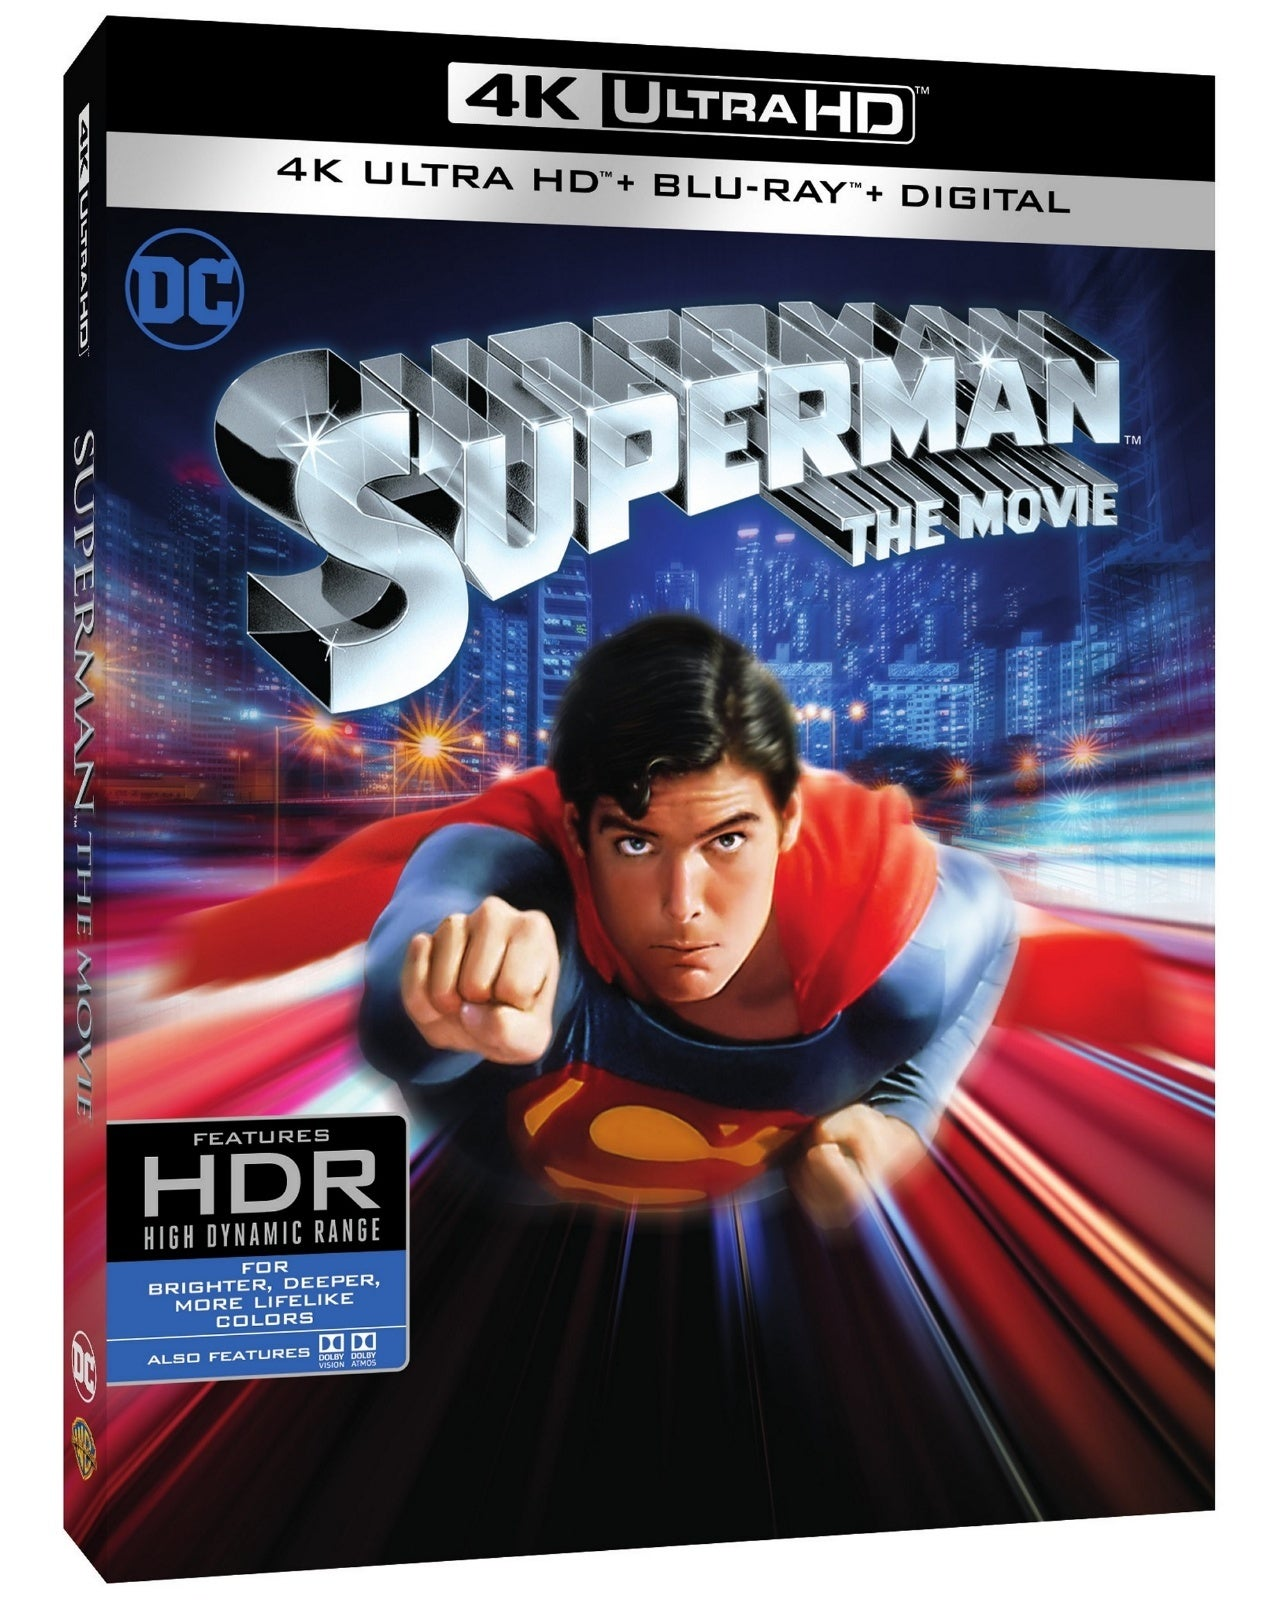 'Superman: The Movie' to Be Released on Ultra HD Blu-Ray for First Time